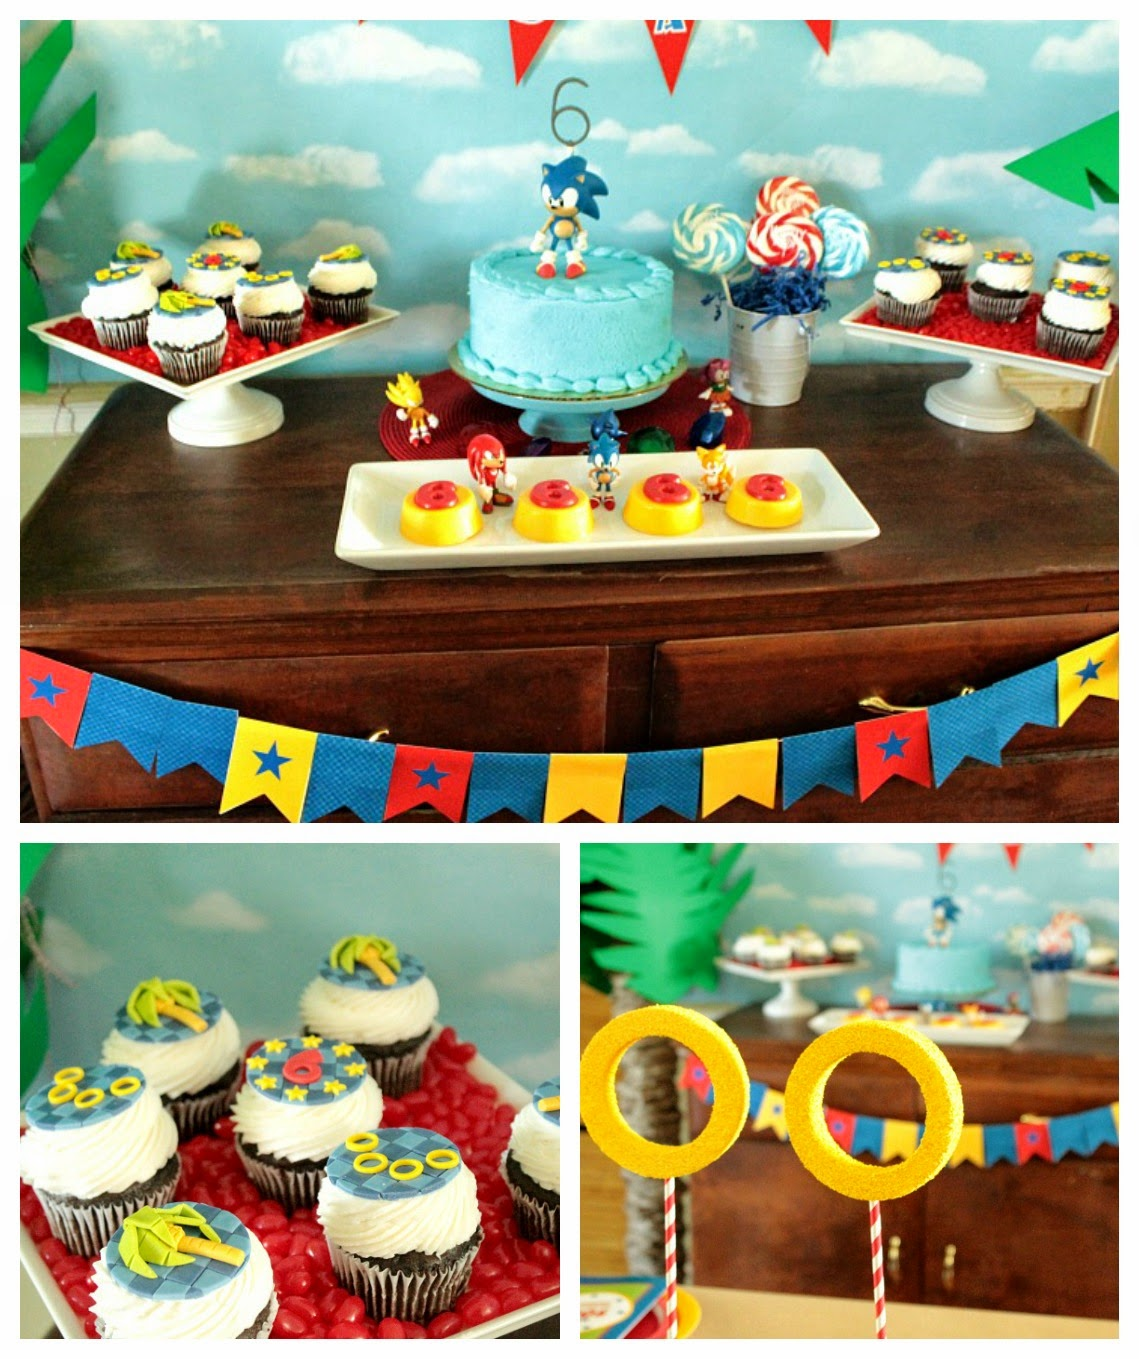 Cupcake Wishes Birthday Dreams Real Parties Adam S Sonic The Hedgehog Birthday Party Recap